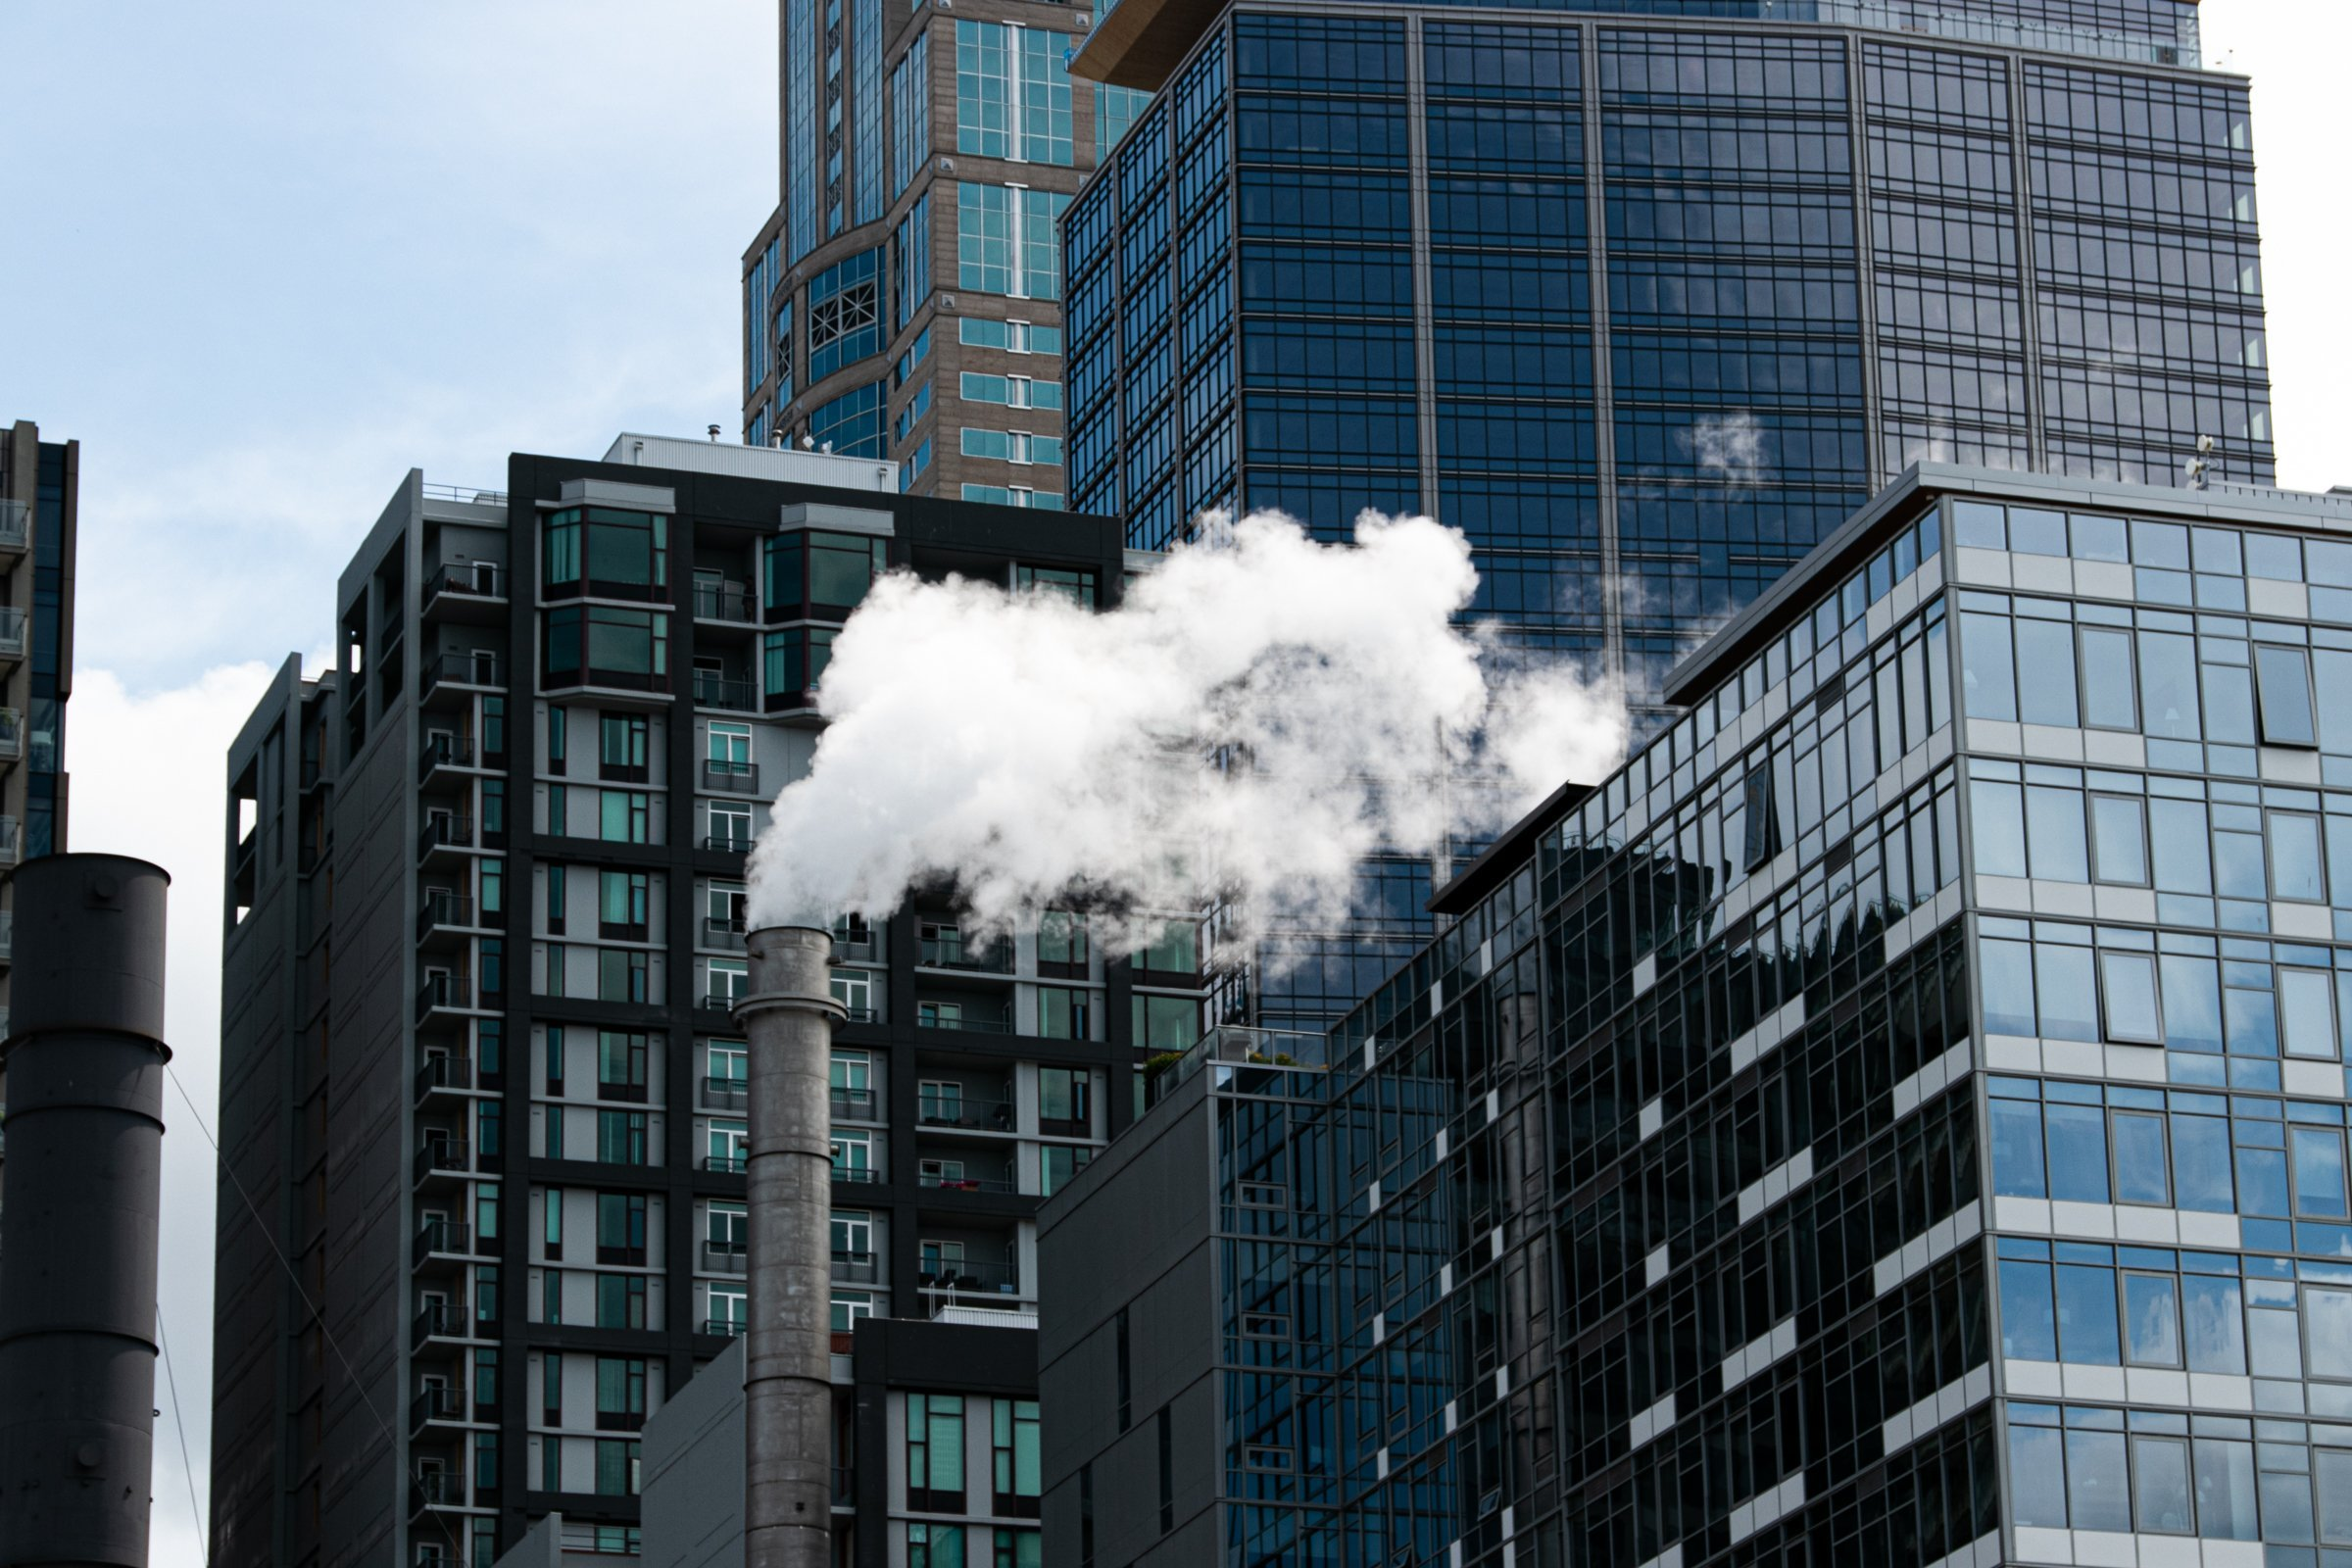 White Smoke From Chimney Surrounded By Tall Buildings